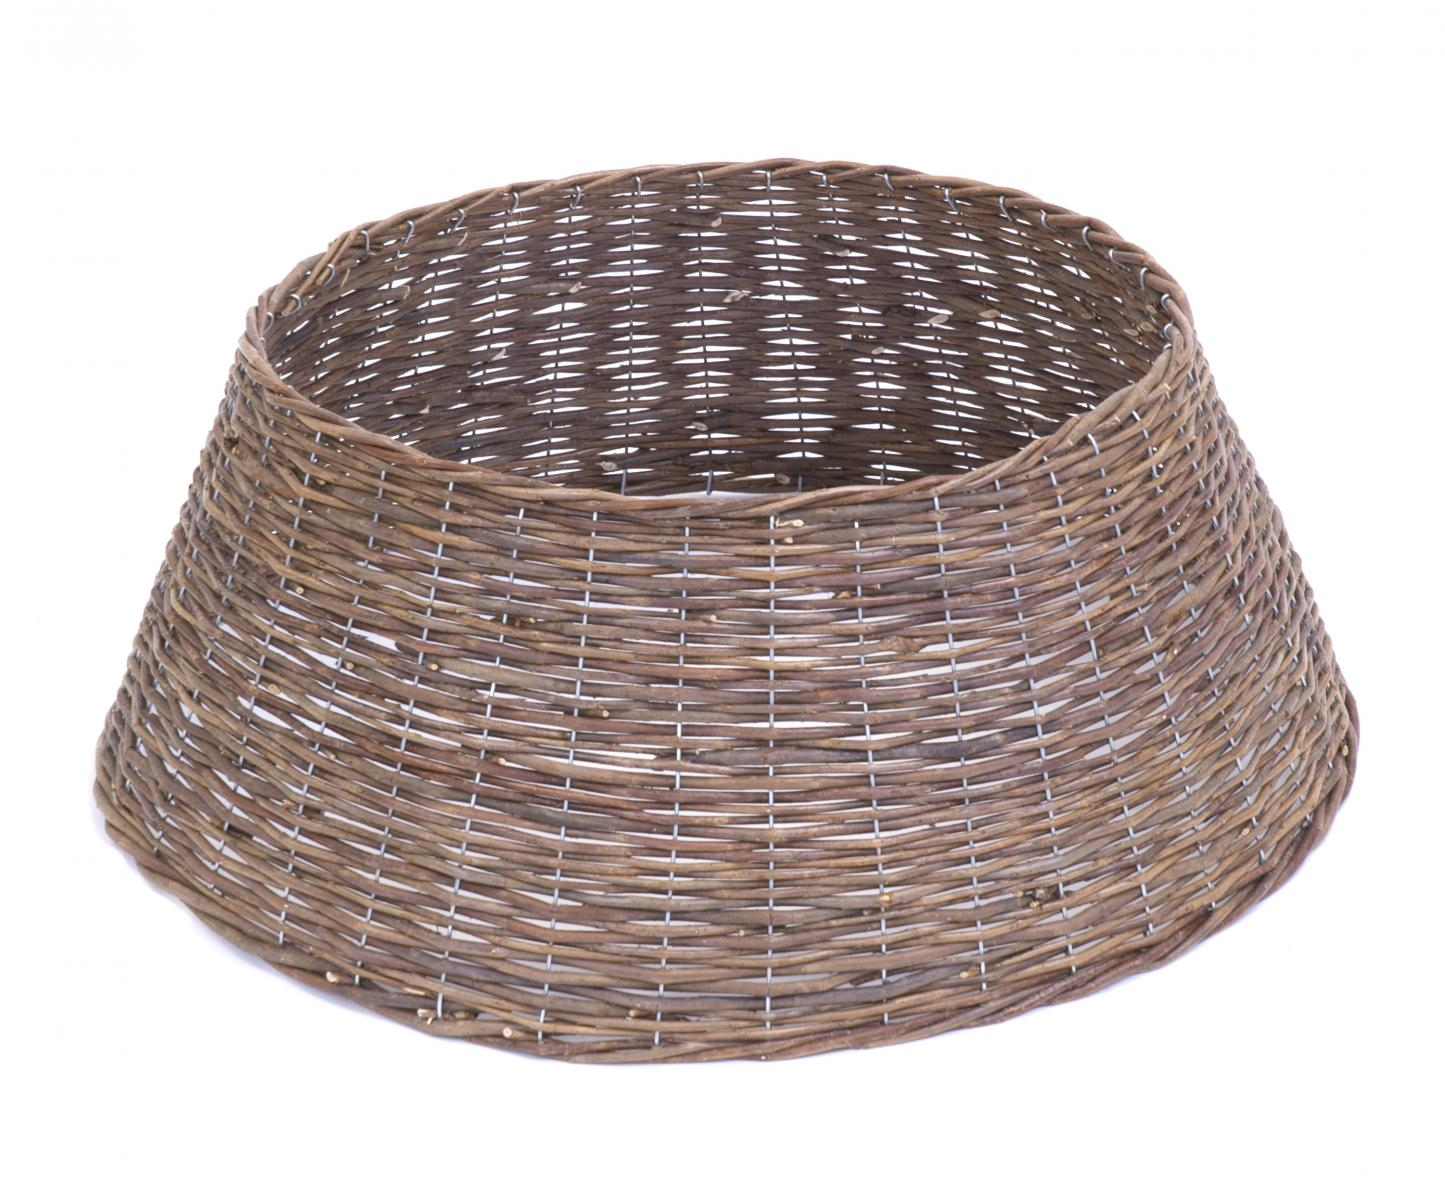 50cm x 70cm Natural willow tree skirt – Now Only £17.00